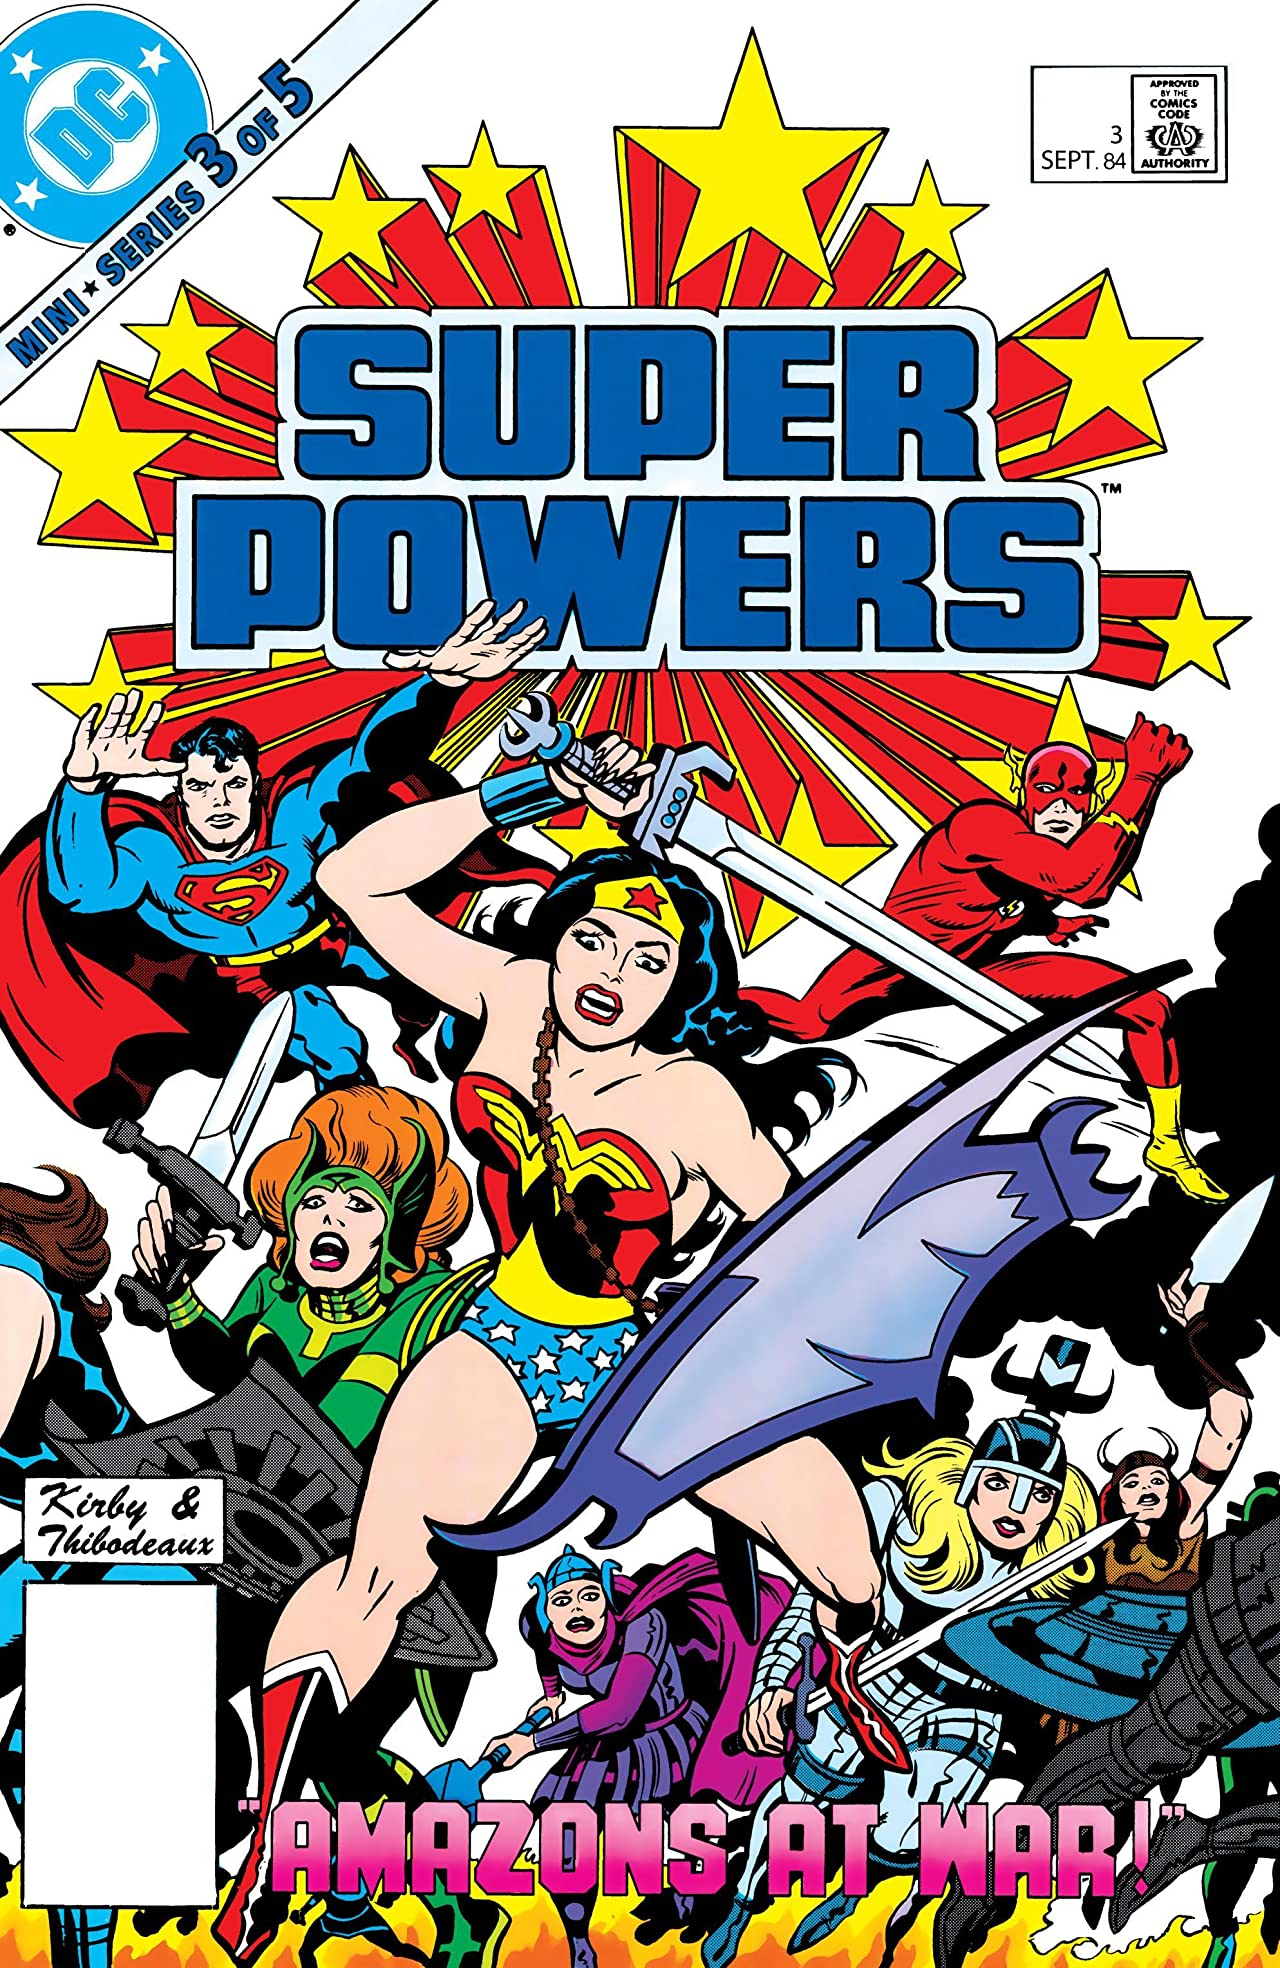 Super Powers (1984) #3